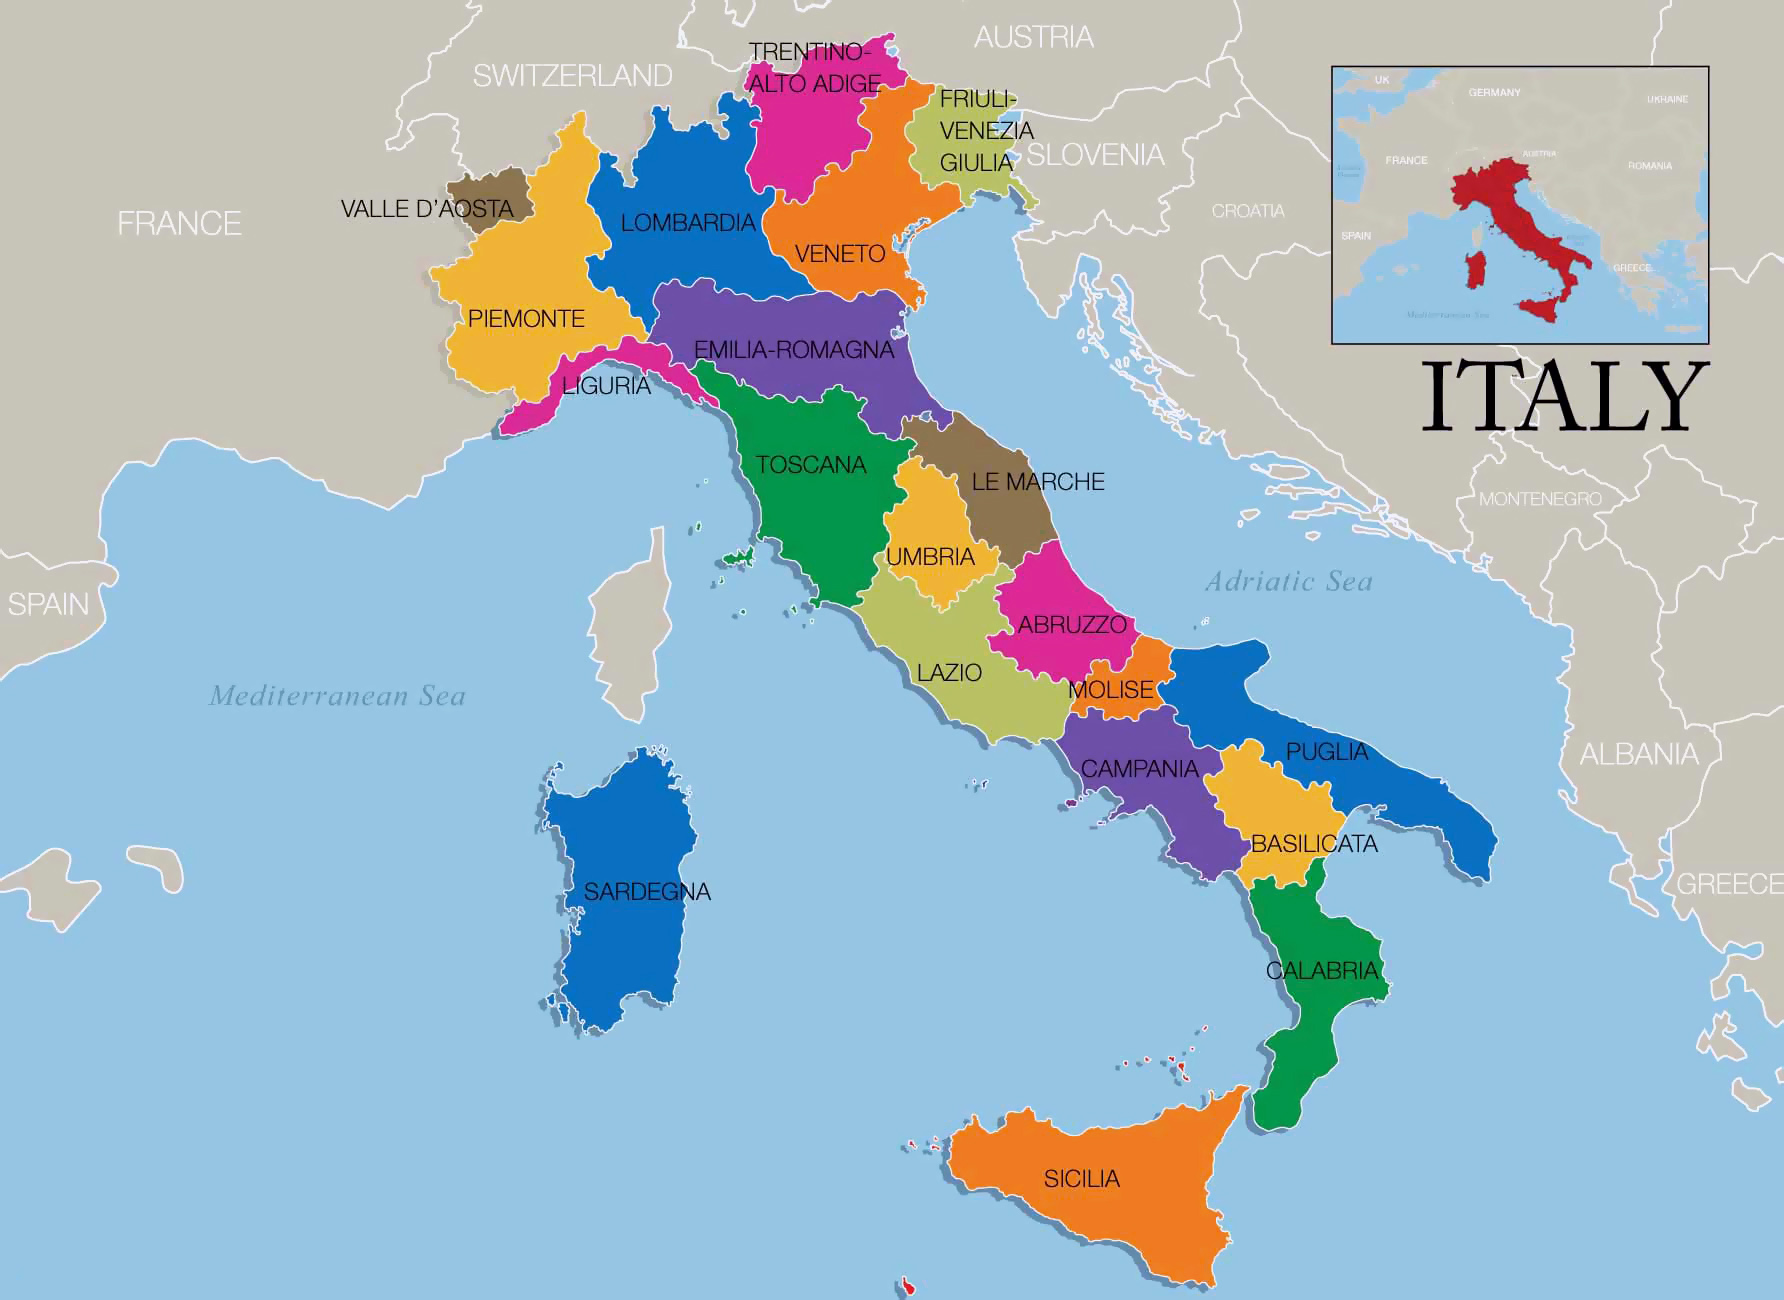 Wine Regions Italy Map.Map Of Italy Wine Regions Wine Regions Map Of Italy Vidiani Com